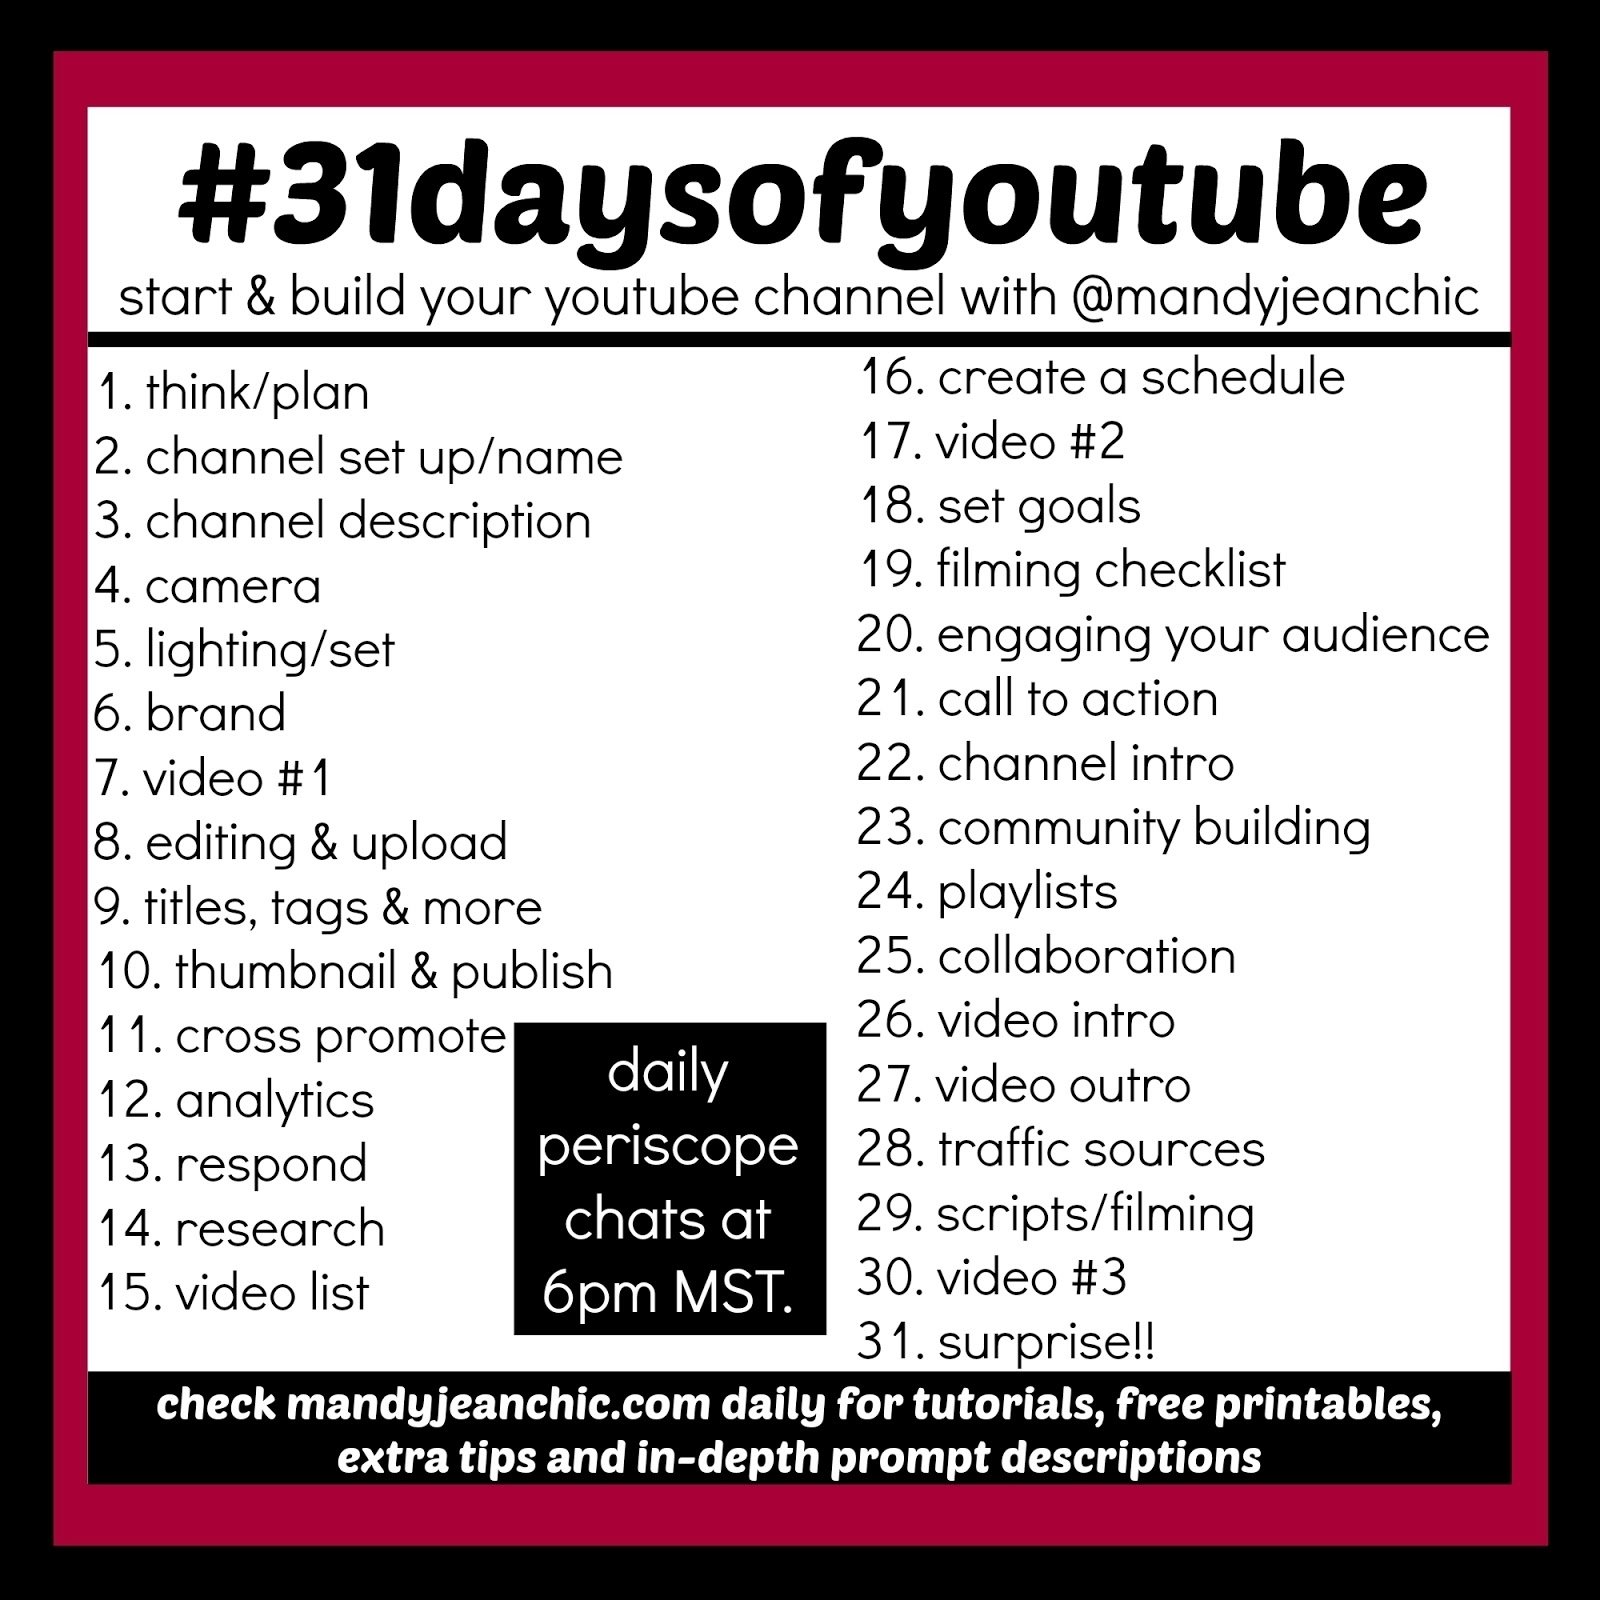 10 Trendy Good Ideas For A Youtube Channel mandy jean chic 31daysofyoutube day 1 think plan organizing your 1